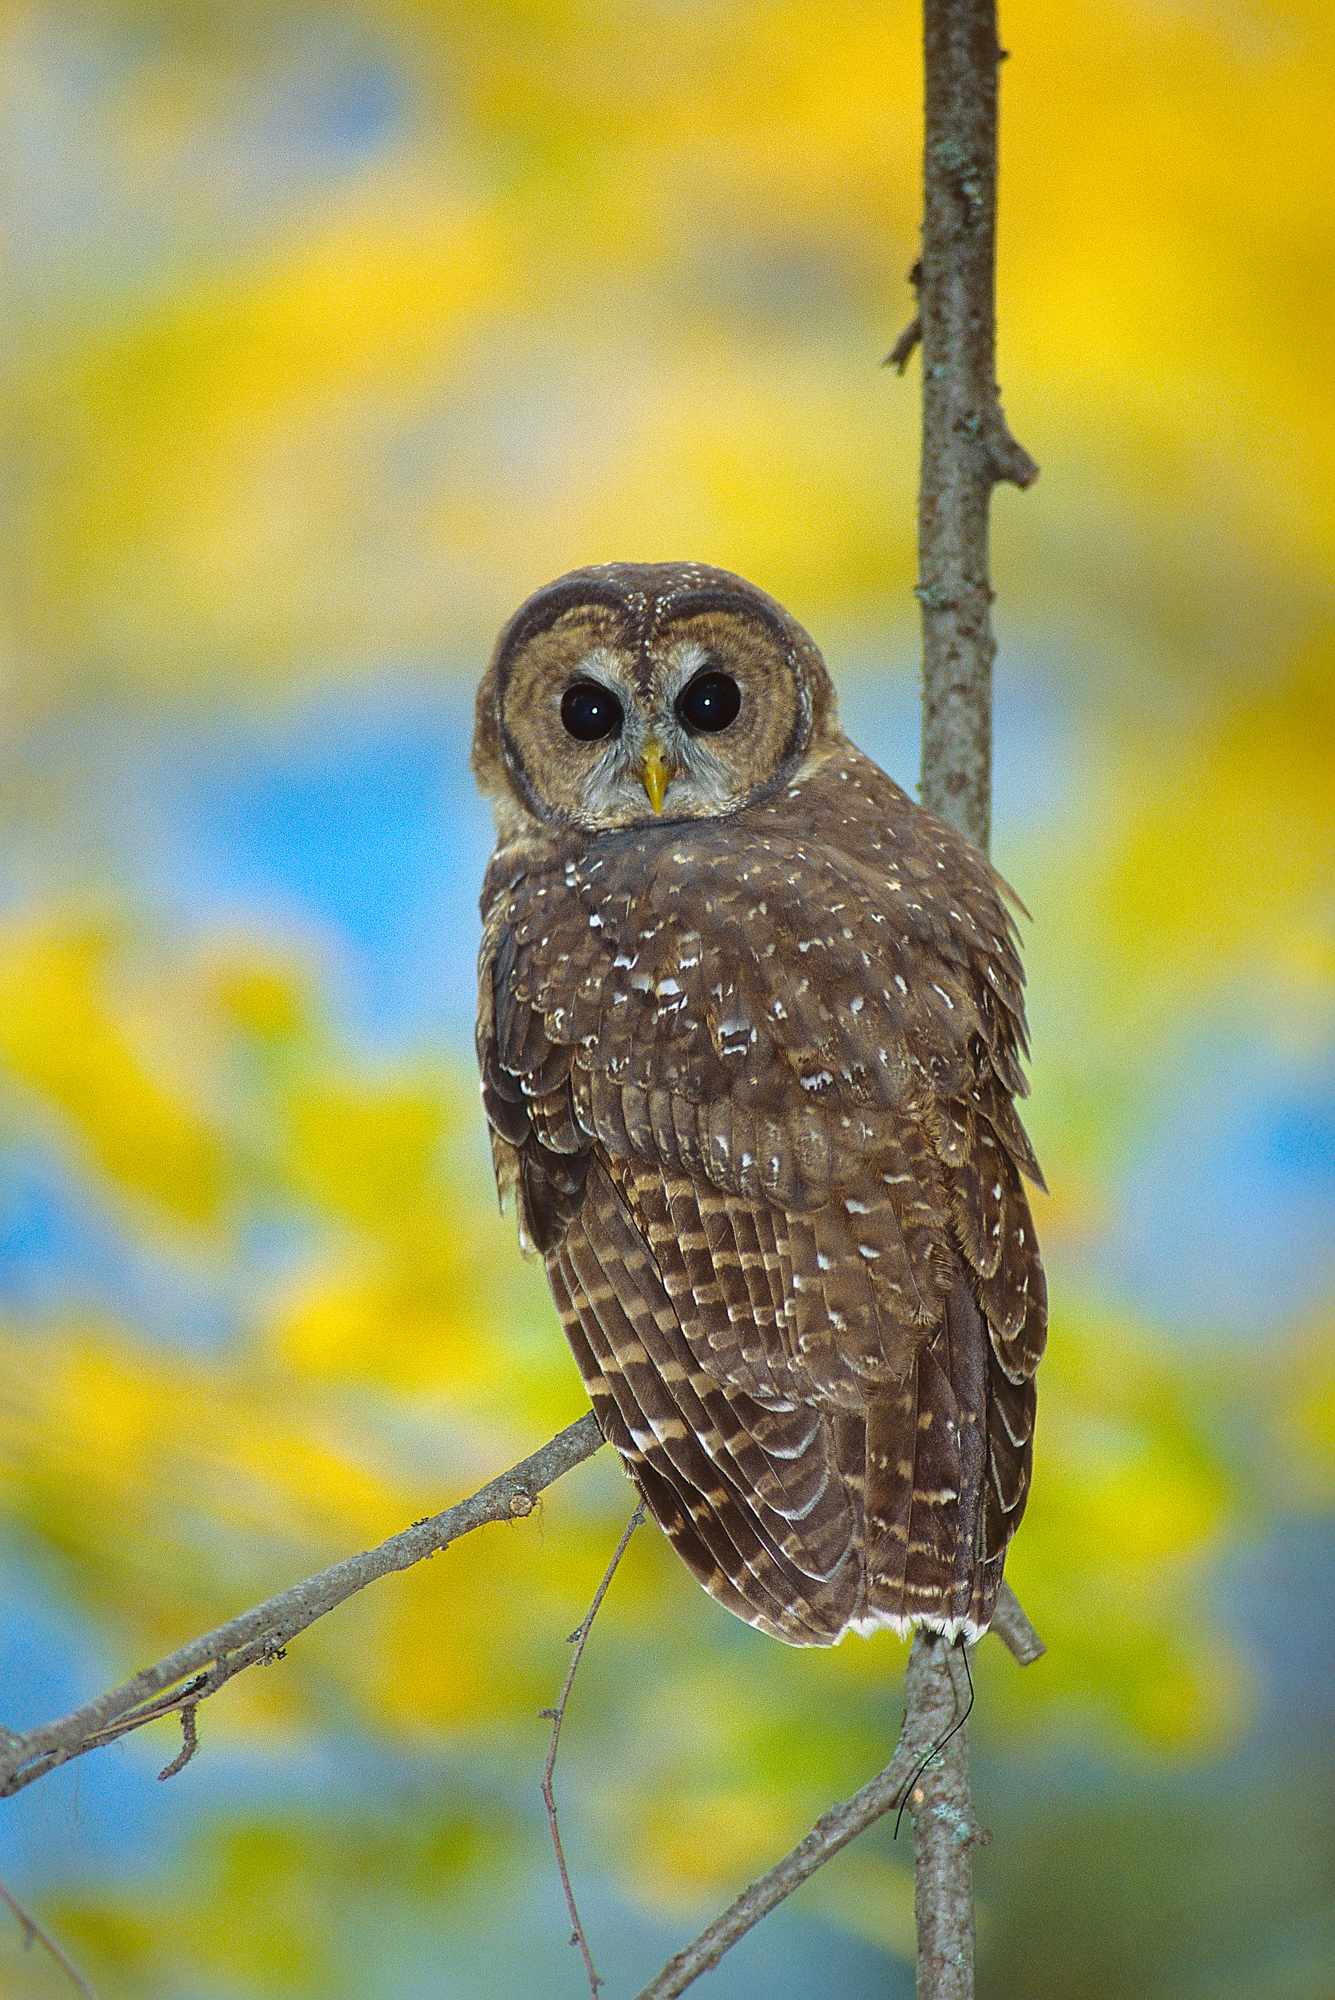 An adult female Northern Spotted Owl found in a nesting stand near Hope, B.C. Photo: Jared Hobbs